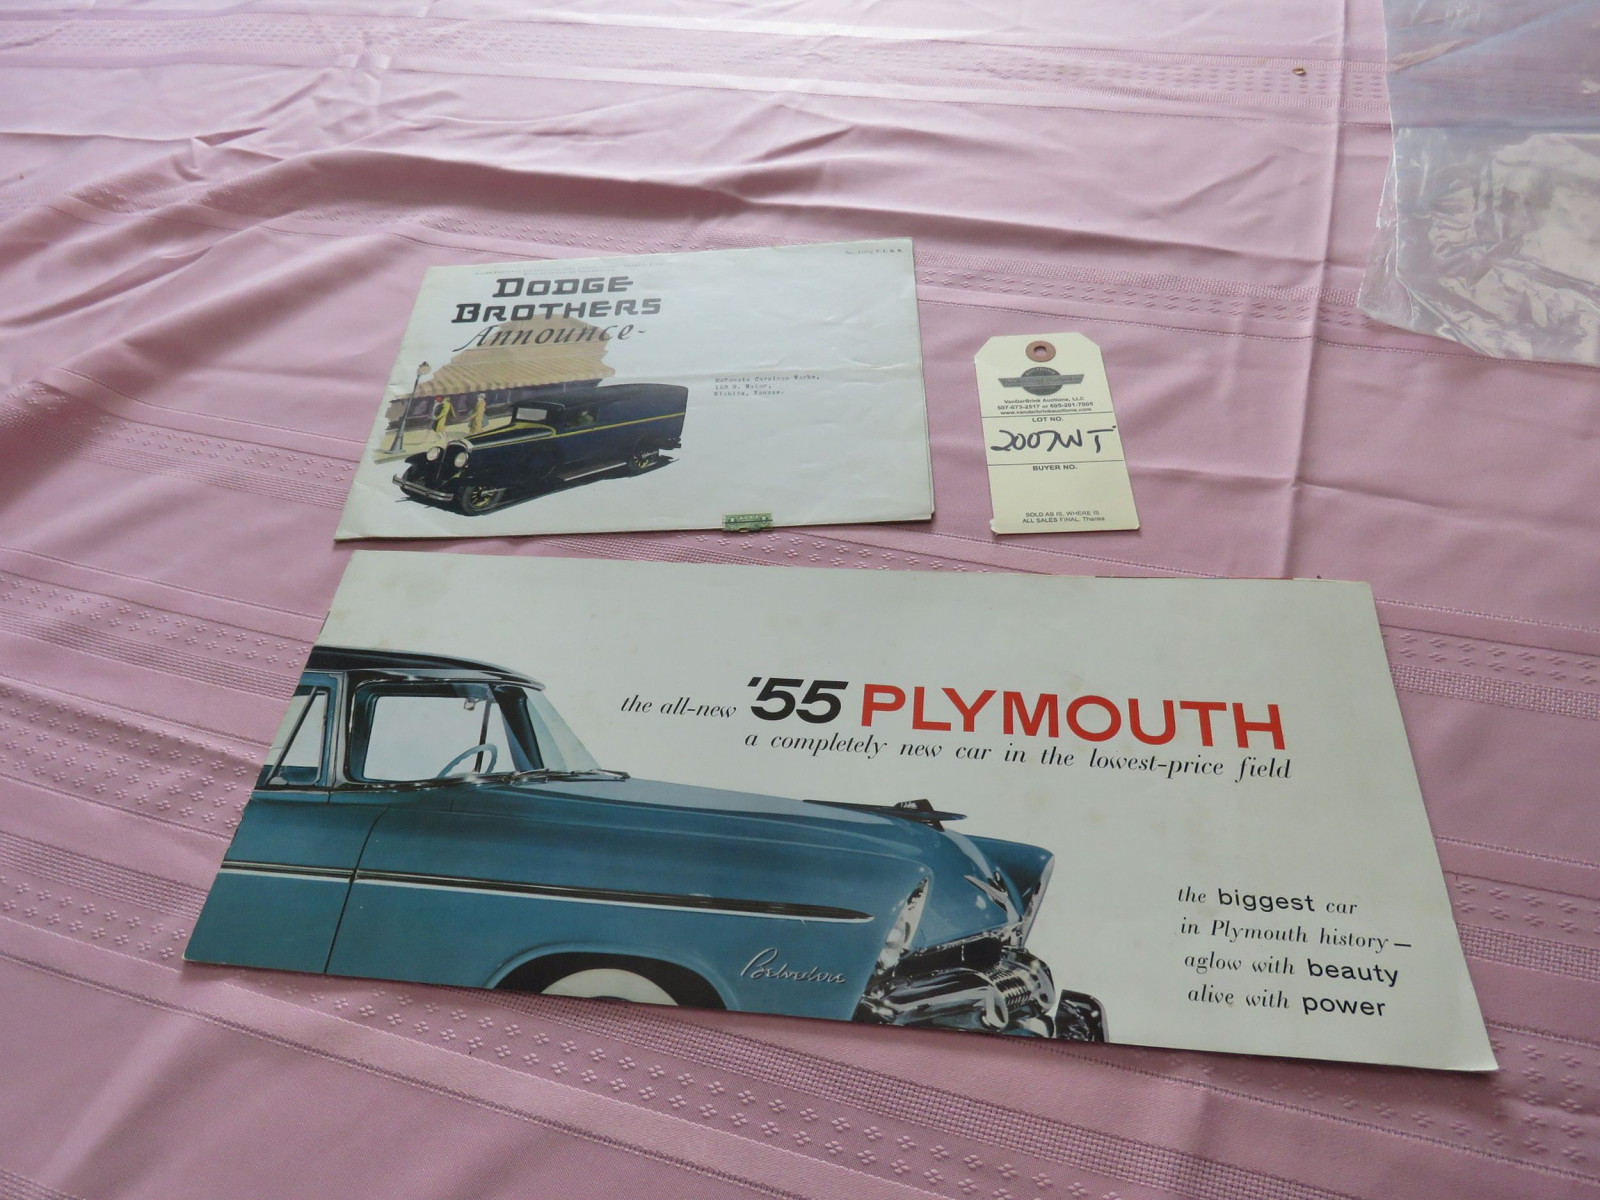 1955 Plymouth & Dodge Brothers Literature Group - Image 1